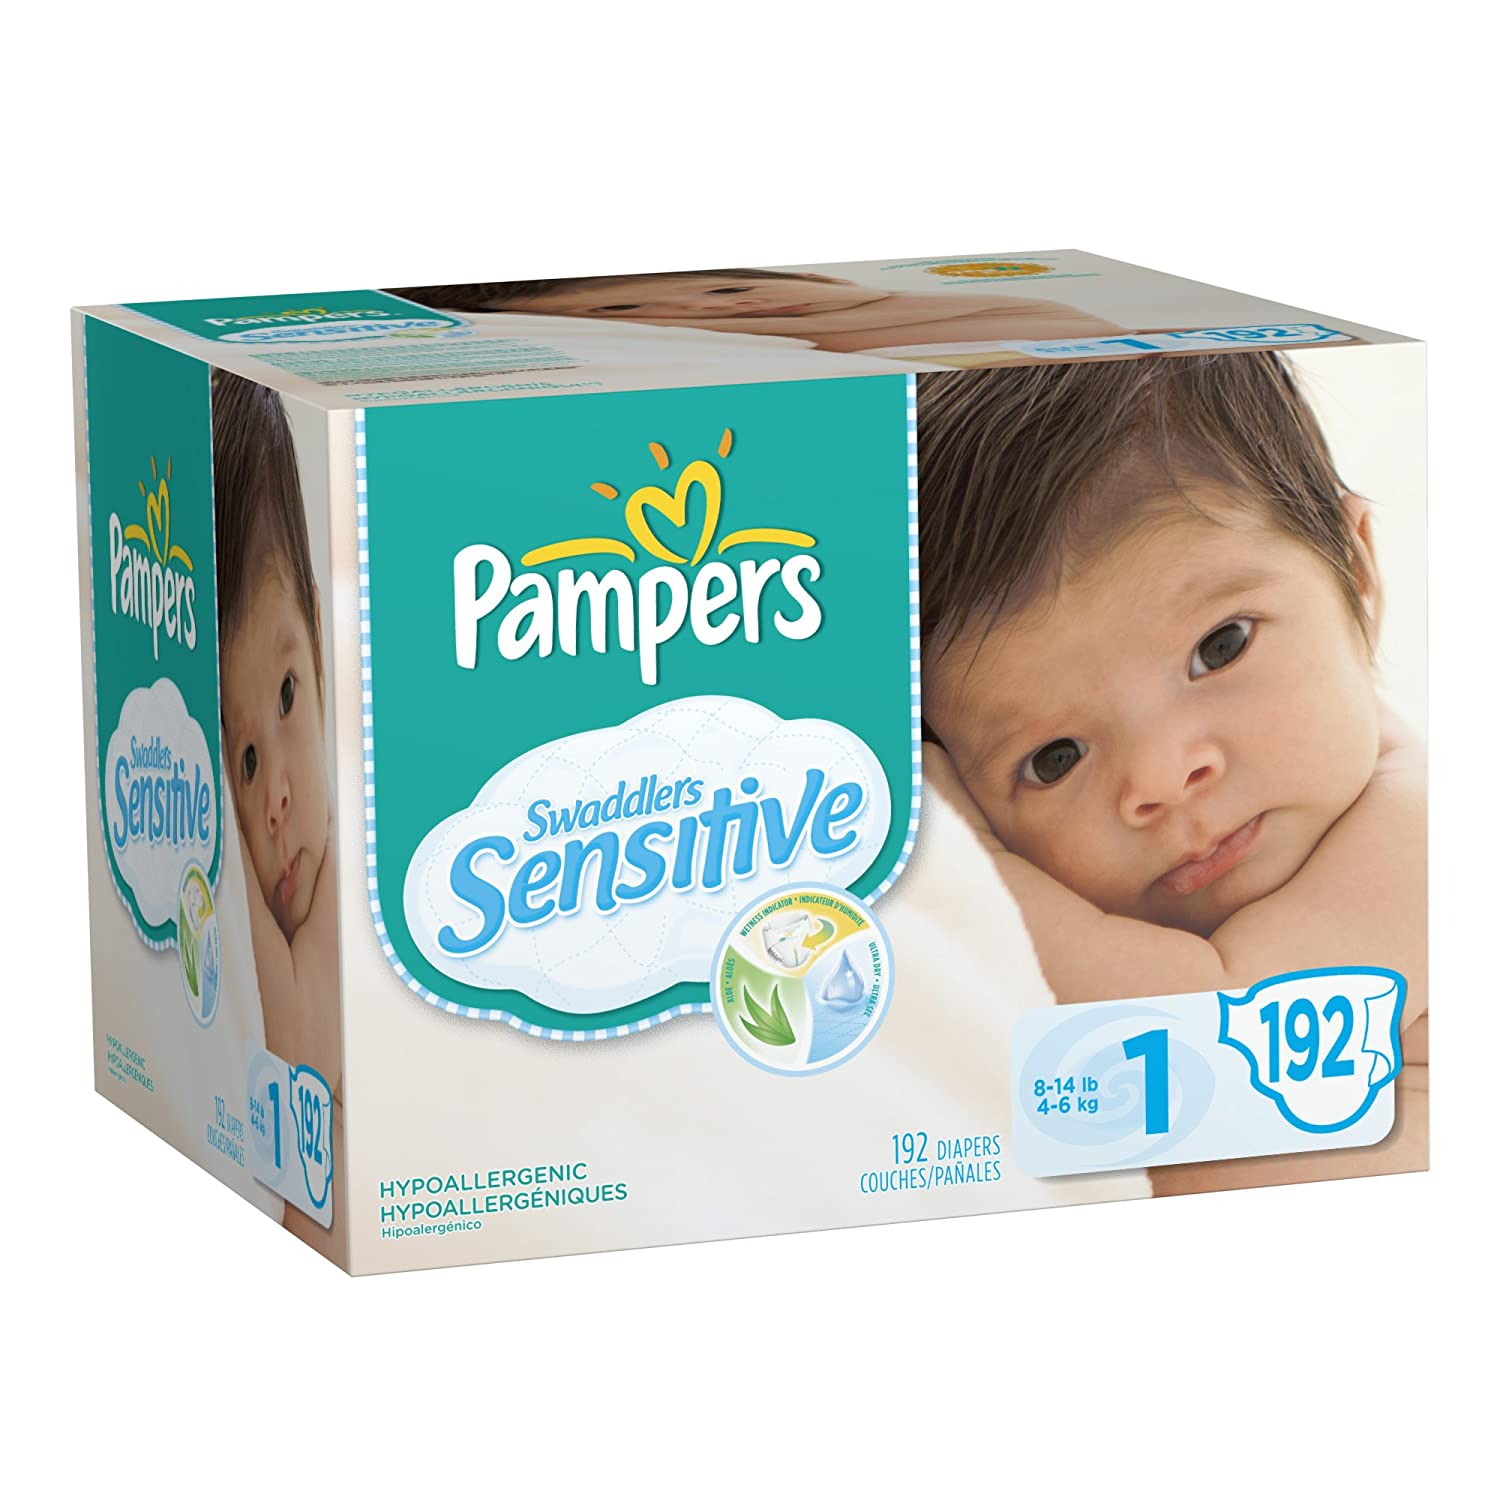 Pampers Swaddlers Sensitive Diapers Economy Pack Plus Size 1 192 Count Packaging May Vary at Sears.com